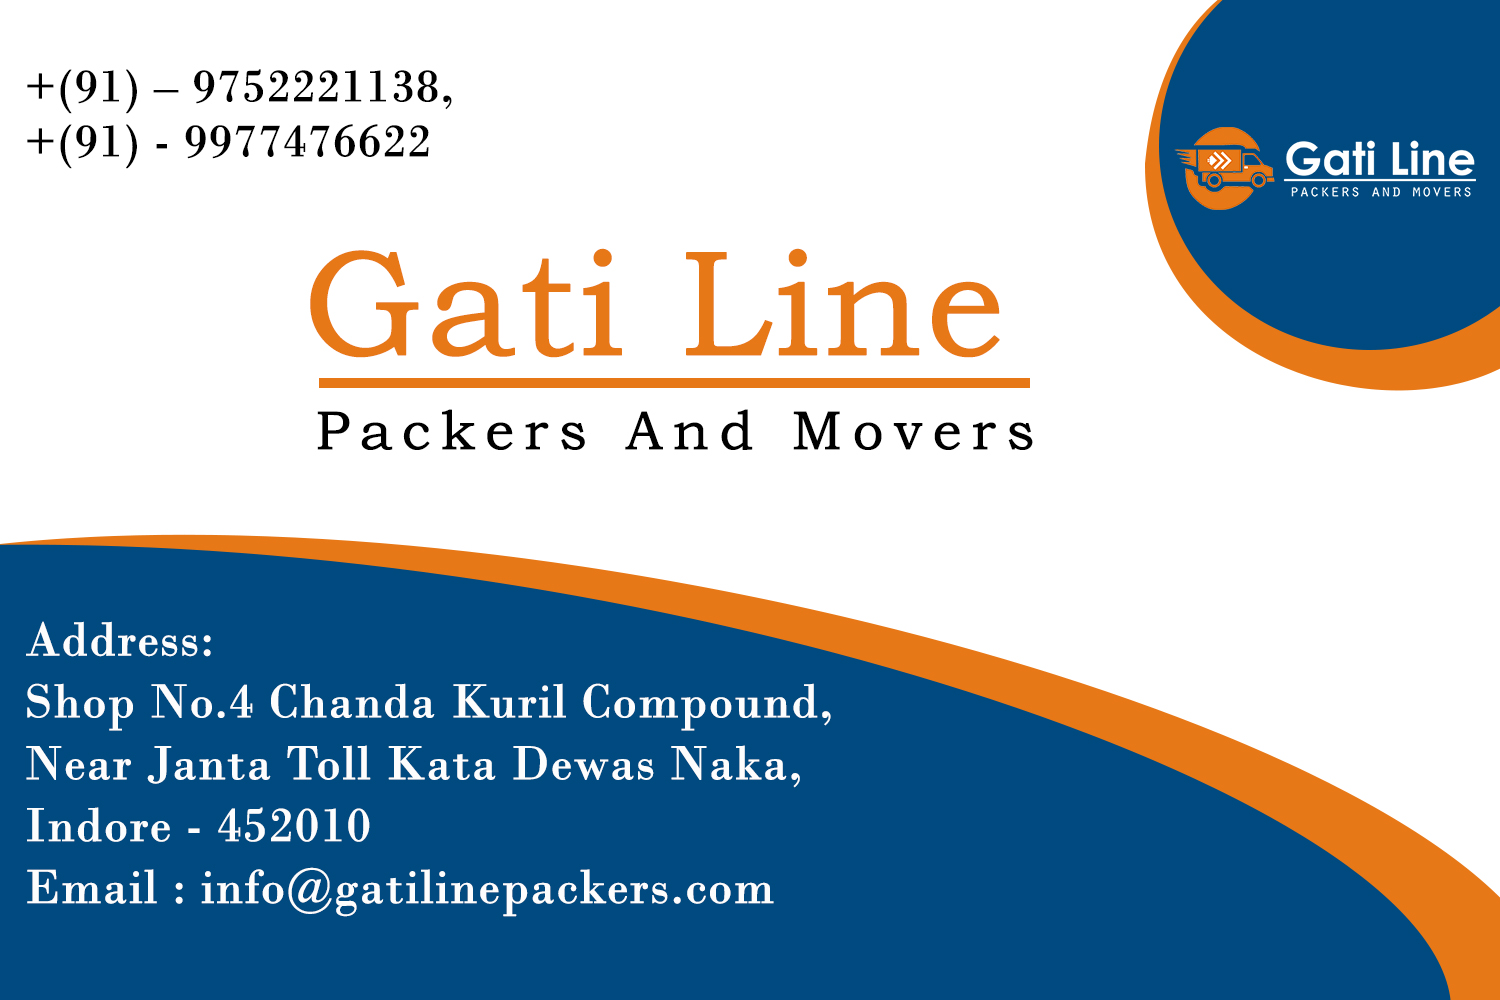 Gati Line Provide Packers and Movers in Indore